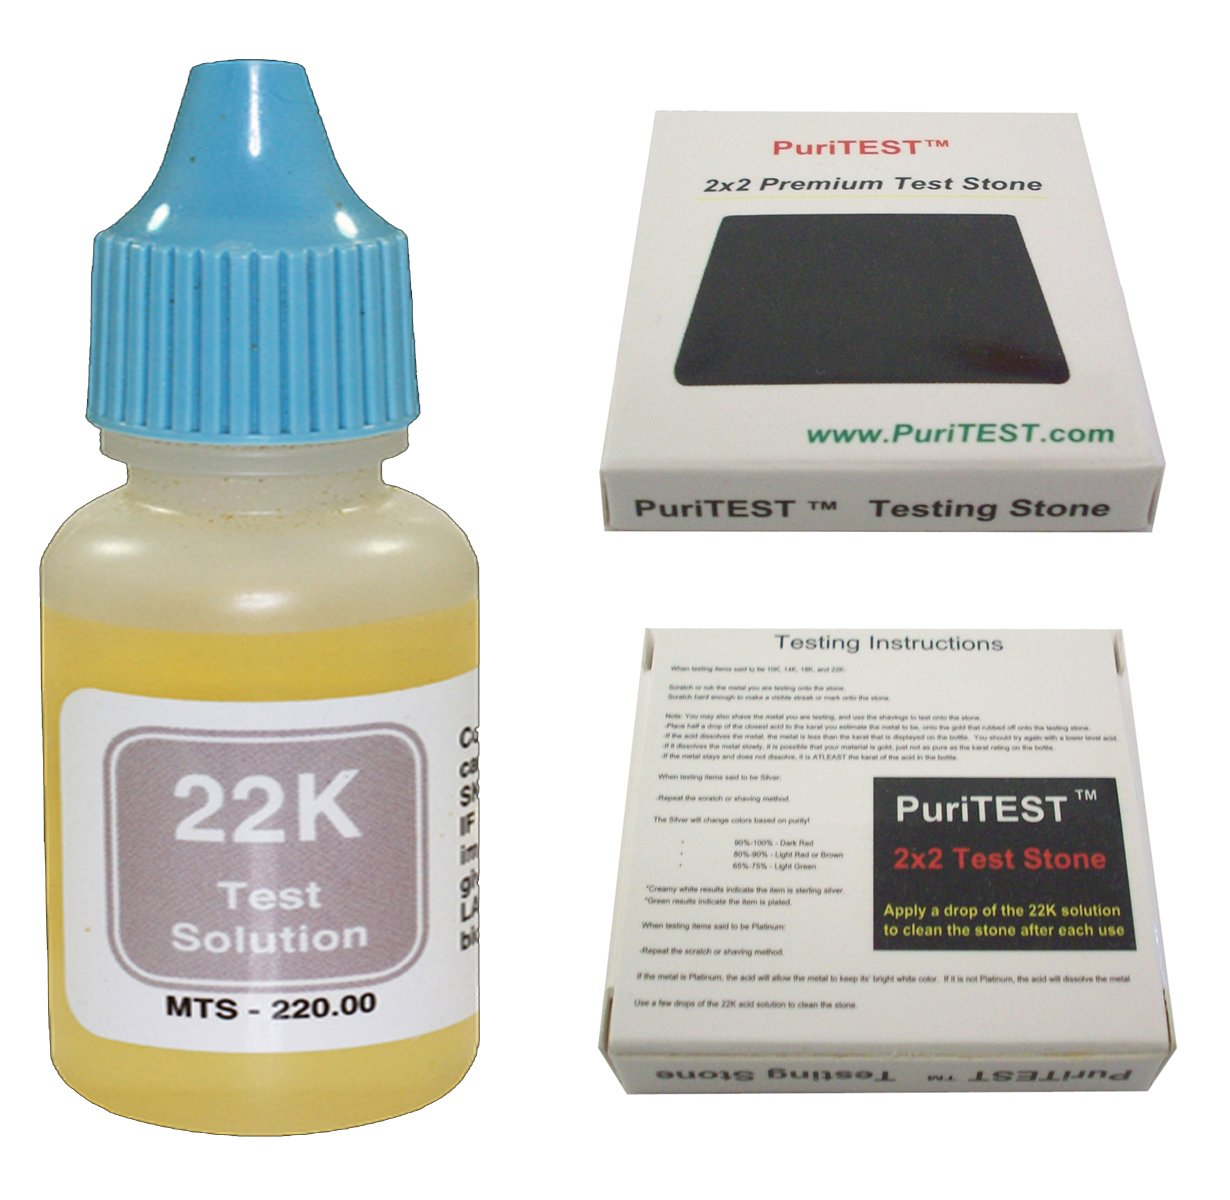 22k Gold Test Solution Tester Acid Bottle + 2x2 Testing Stone! Detect Scrap Nuggets Metal Jewelry Kit PuriTEST 4336836048